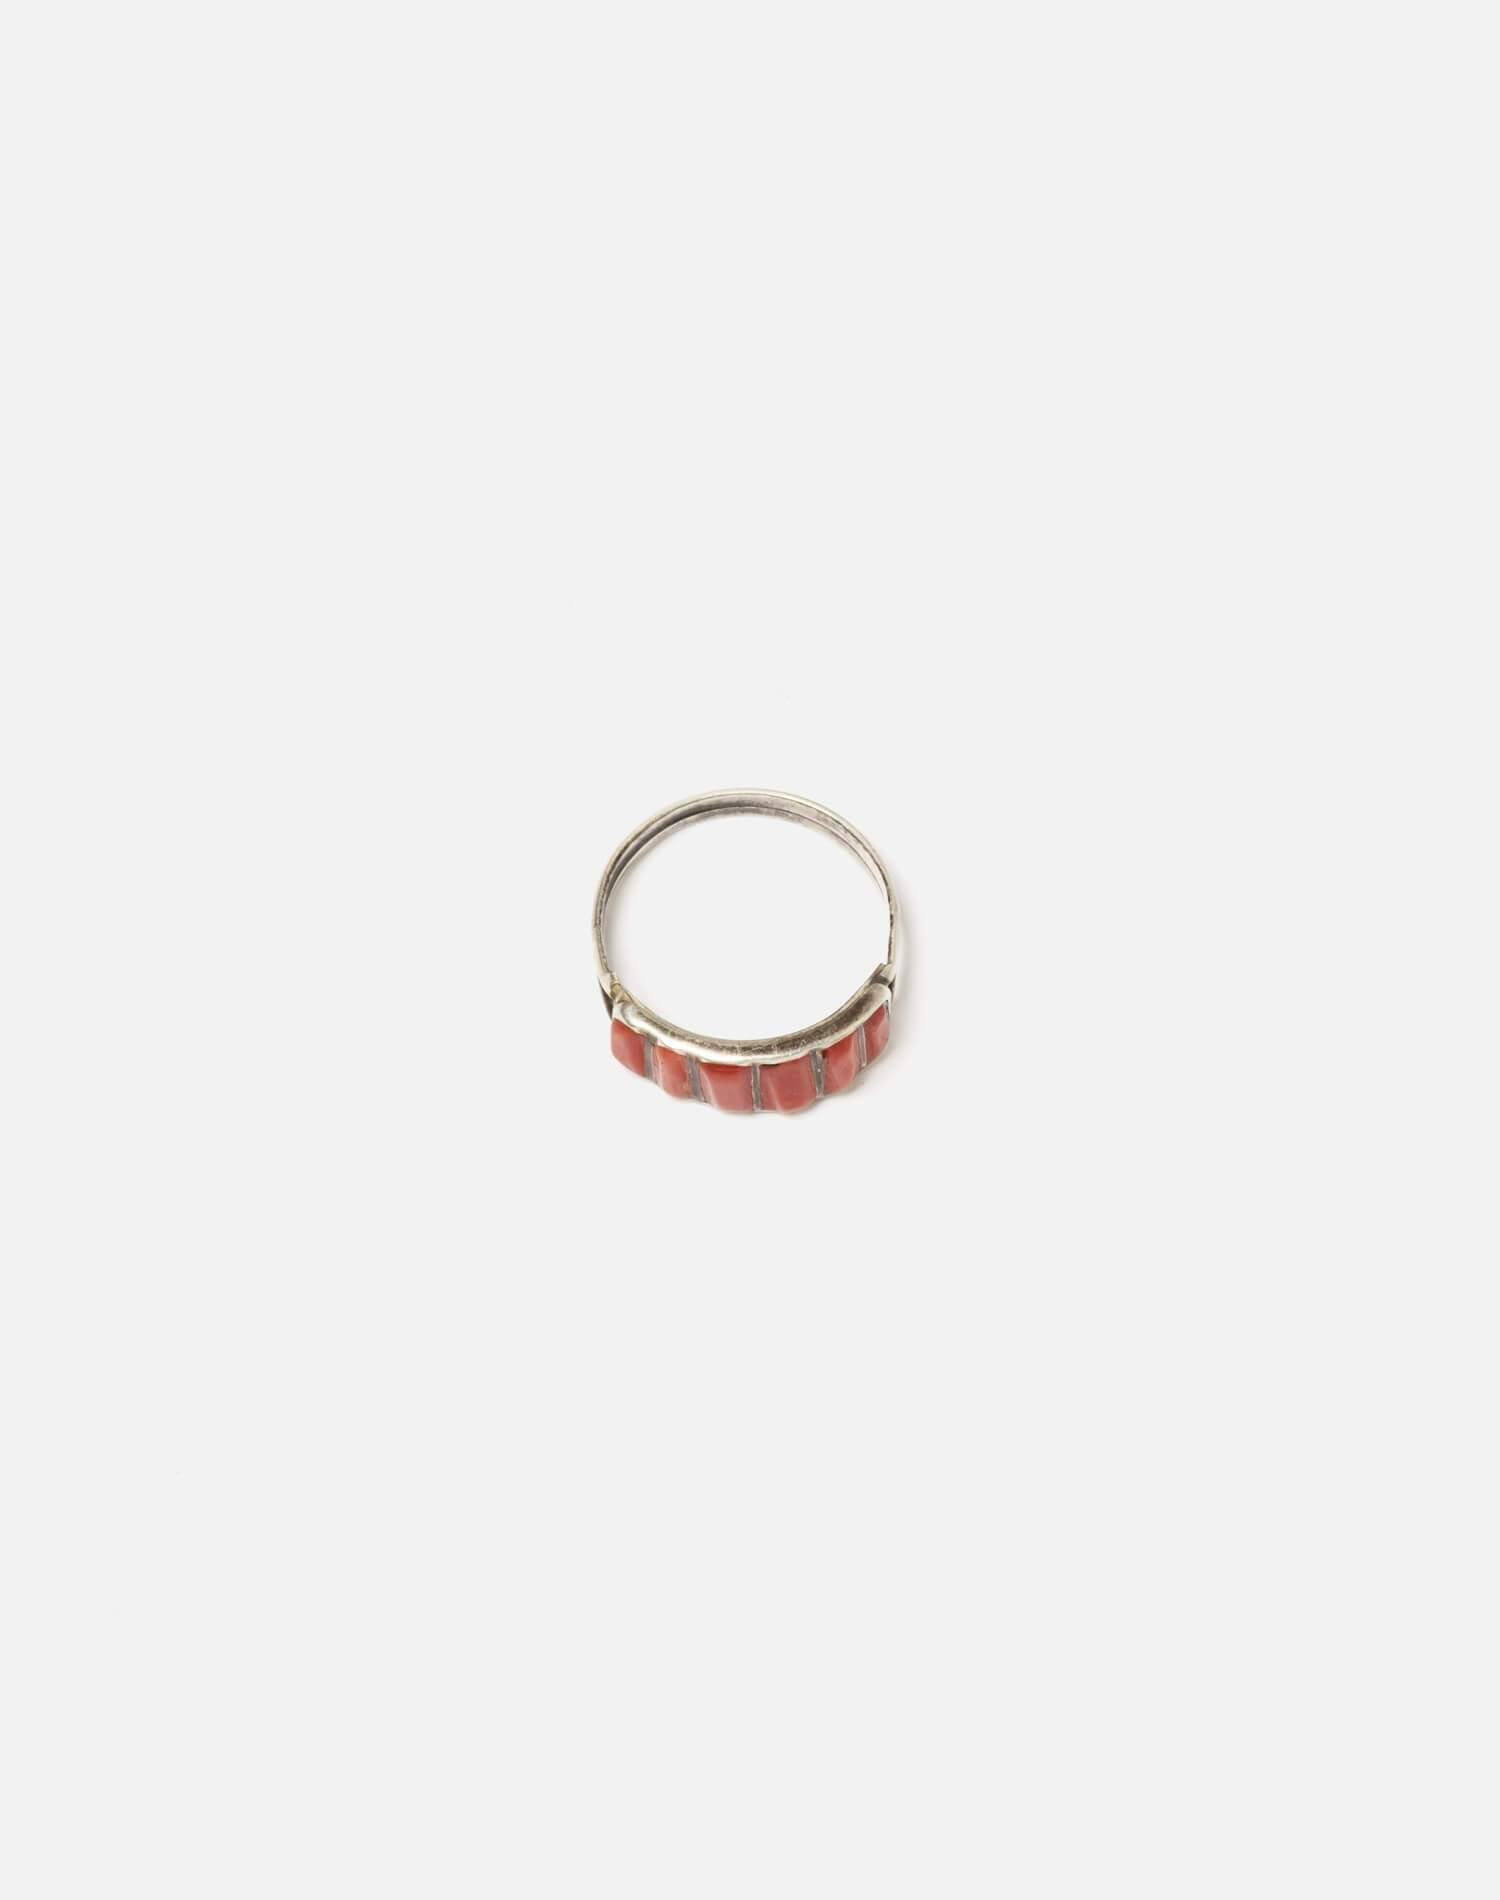 1950s Zuni Inlaid Coral And Sterling Ring - #100 3